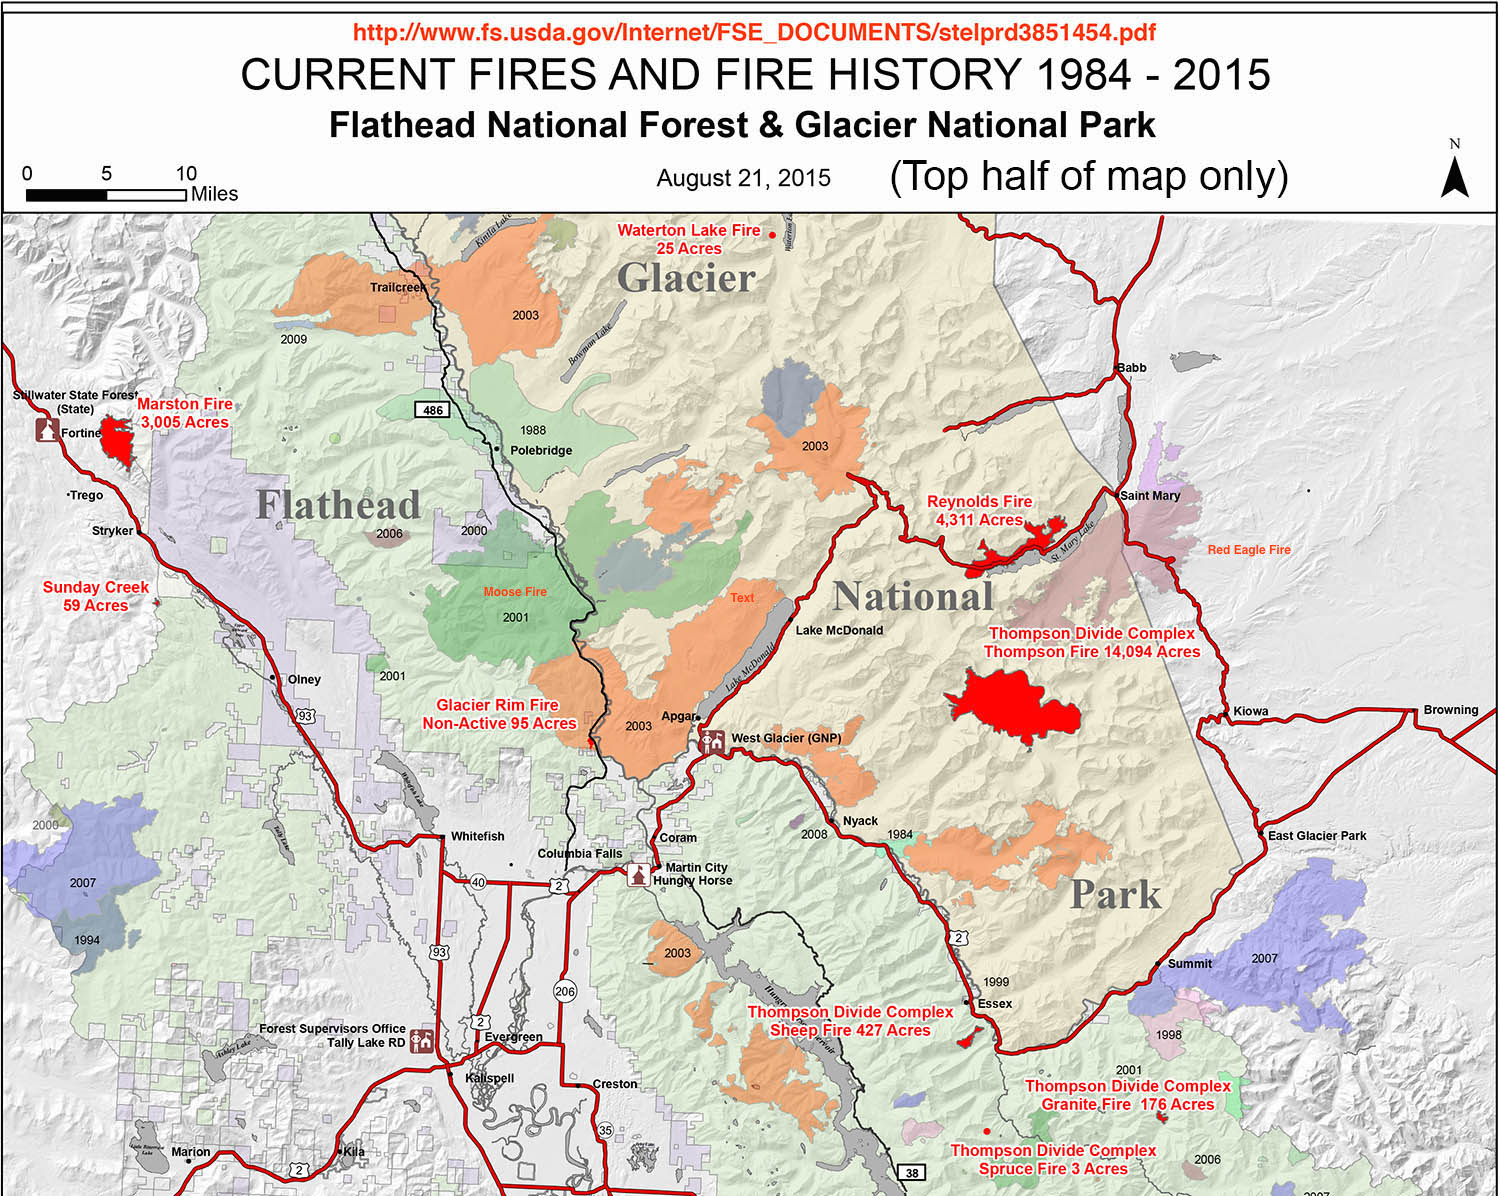 November « 2016 « MoGreenStats on sequoia fire map, valley fire map, lake fire map, wyoming fire map, beaver fire map, dodge fire map, idaho fire map, earth fire map, monticello fire map, olympic national park fire map, cascade fire map, jackson fire map, yosemite fire map, roosevelt fire map, lincoln fire map, stouts fire map, butte fire map, 1910 fire map, orion fire map, washington fire map,